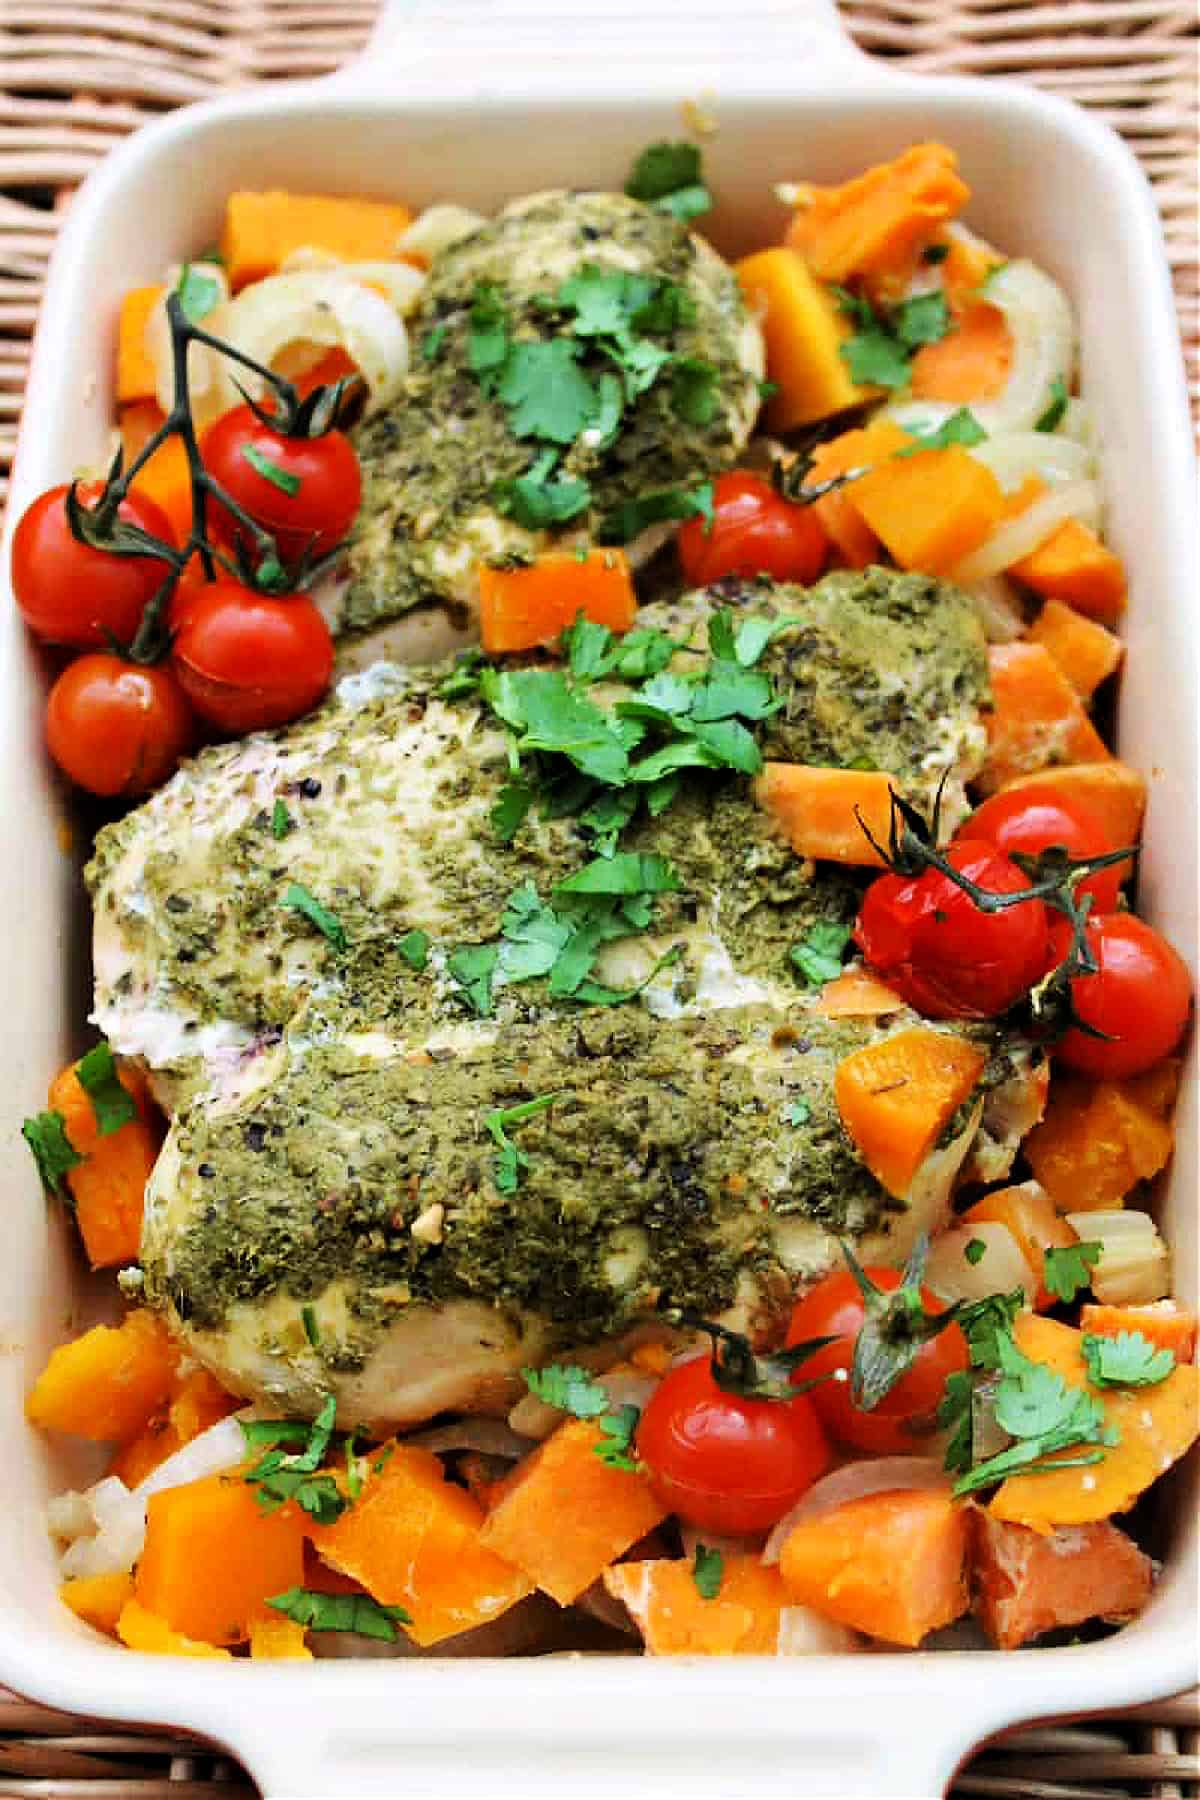 Serving dish of chicken with pesto and vegetables.